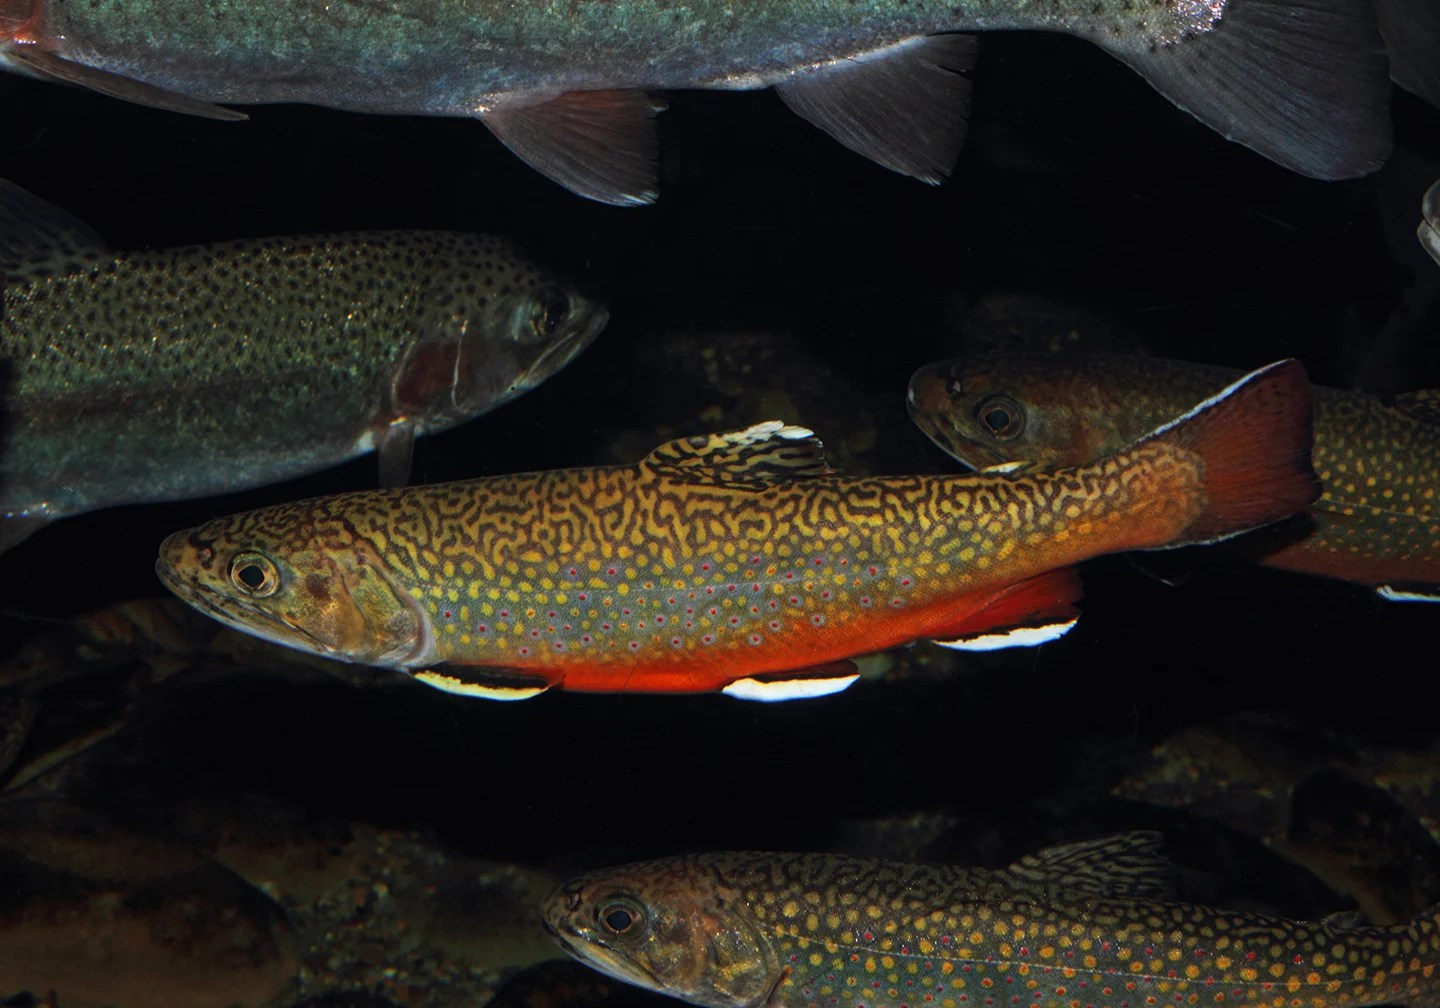 A school of Brook Trout underwater.